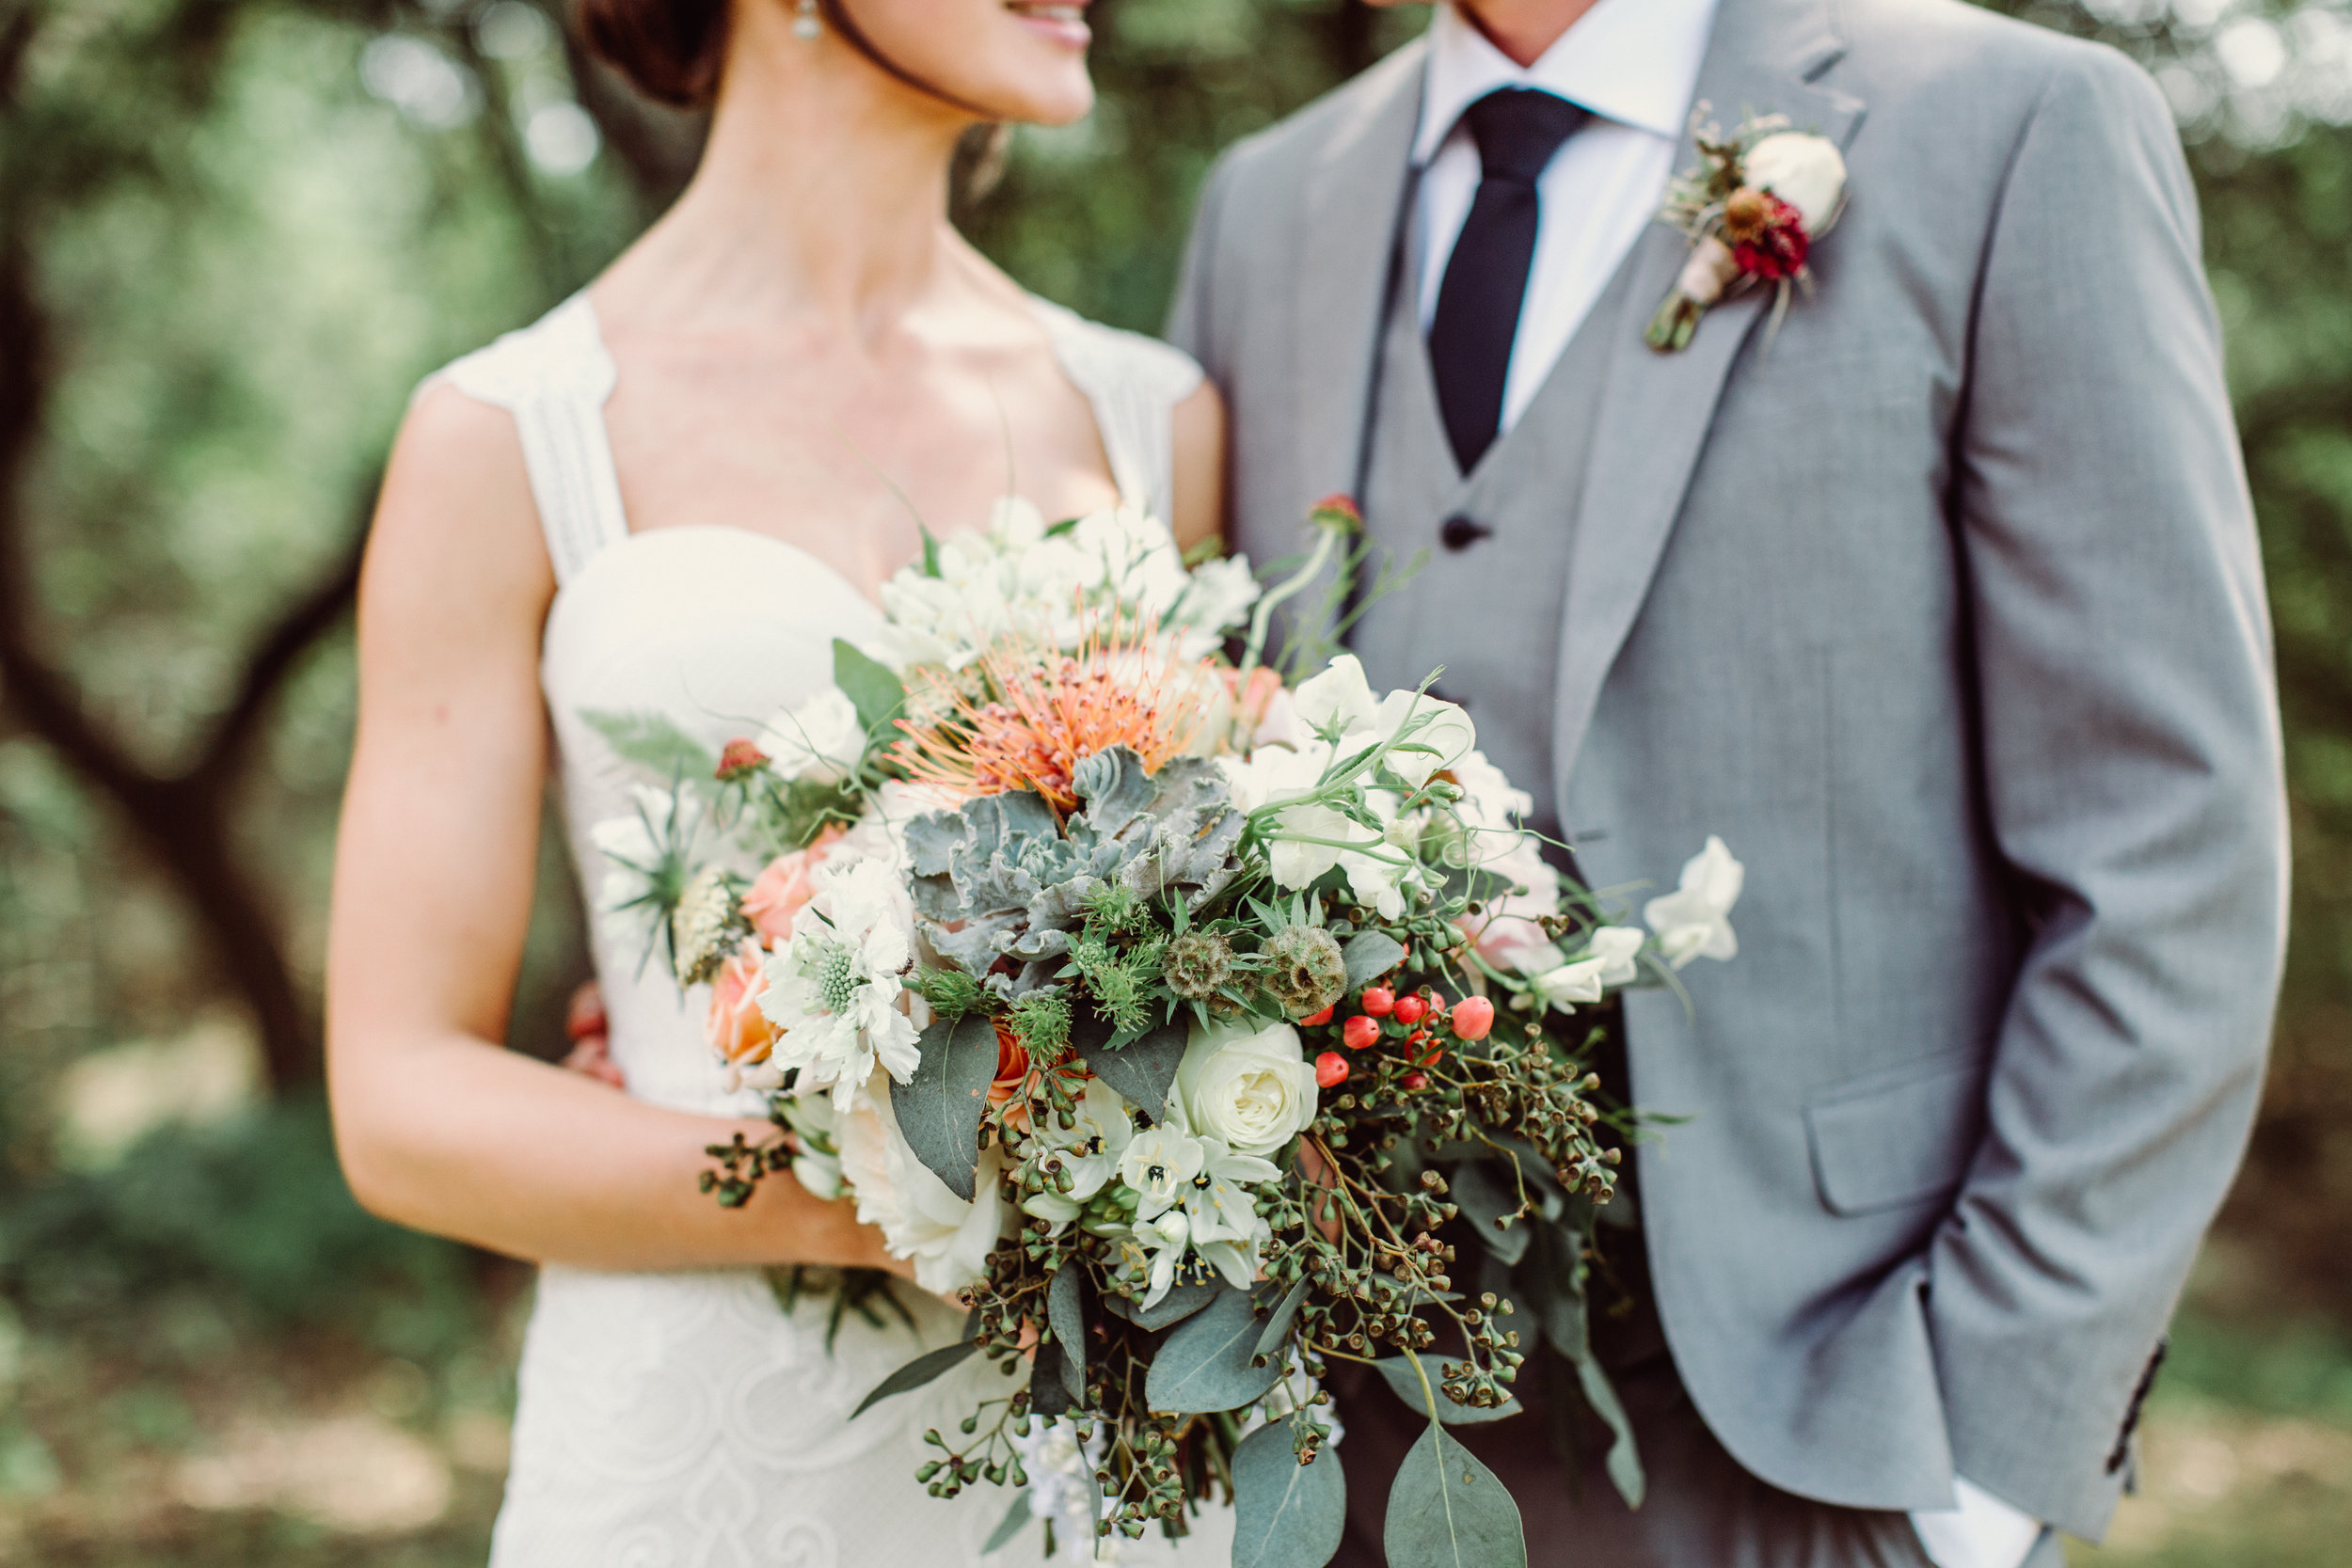 Bohemian style white with pops of orange and succulent bridal bouquet at The Creek Haus. Petal Pushers floral event design studio located in Dripping Springs, Texas.